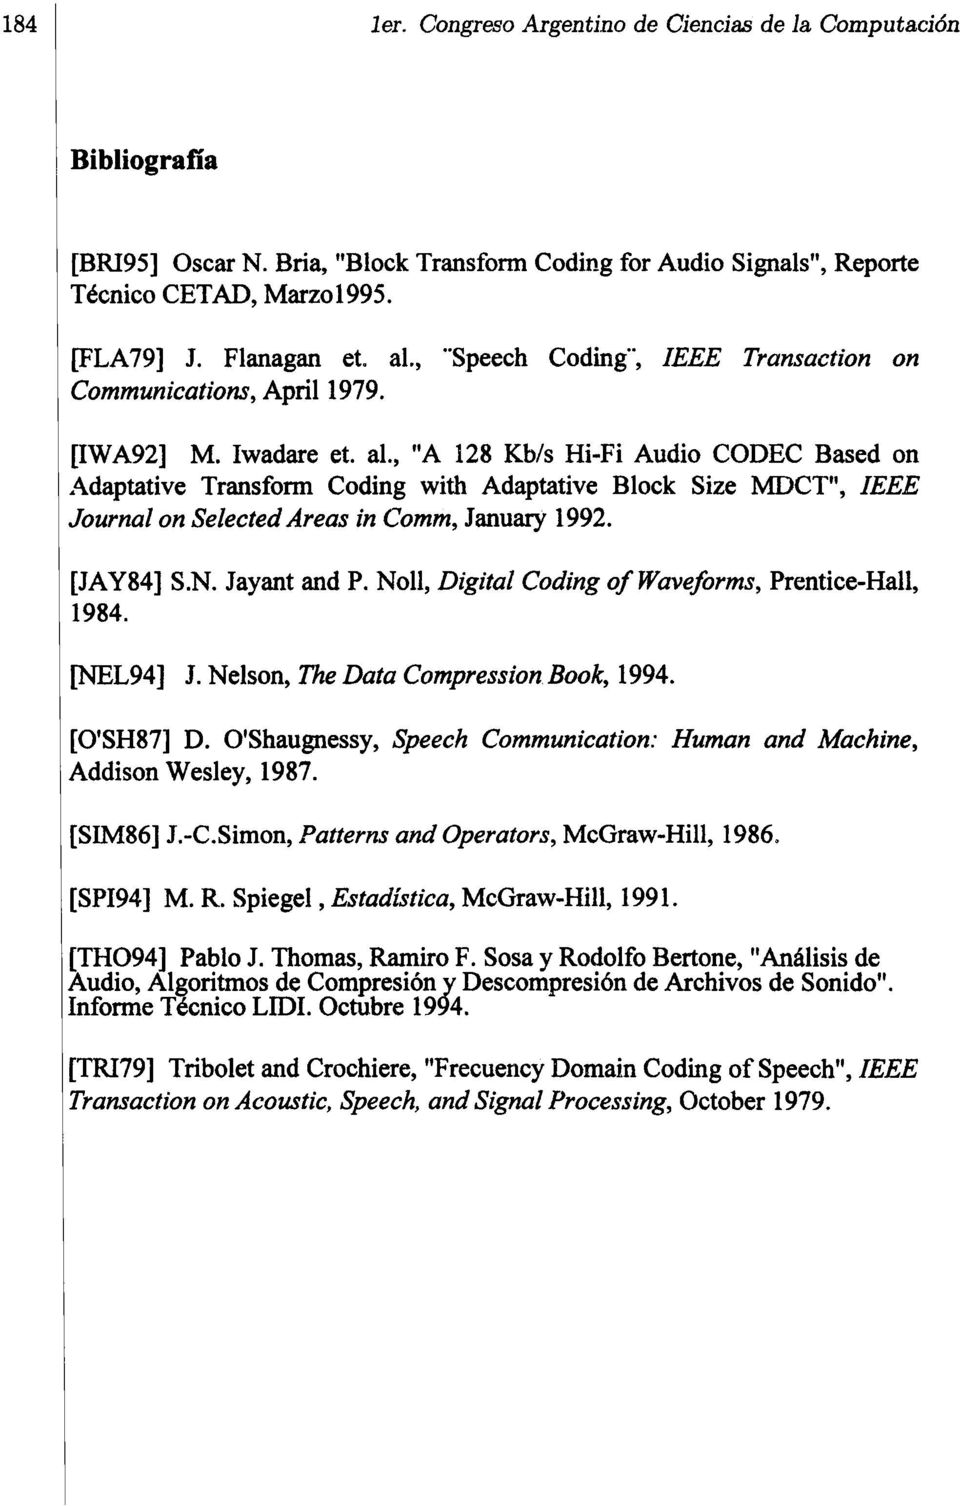 ", ""A 128 Kb/s Hi-Fi Audio CODEC Based on Adaptative Transfonn Coding with Adaptative Block Size MDCT"", IEEE Journal on Selected Areas in Comm, January 1992. [JAY84] S.N. Jayant and P."